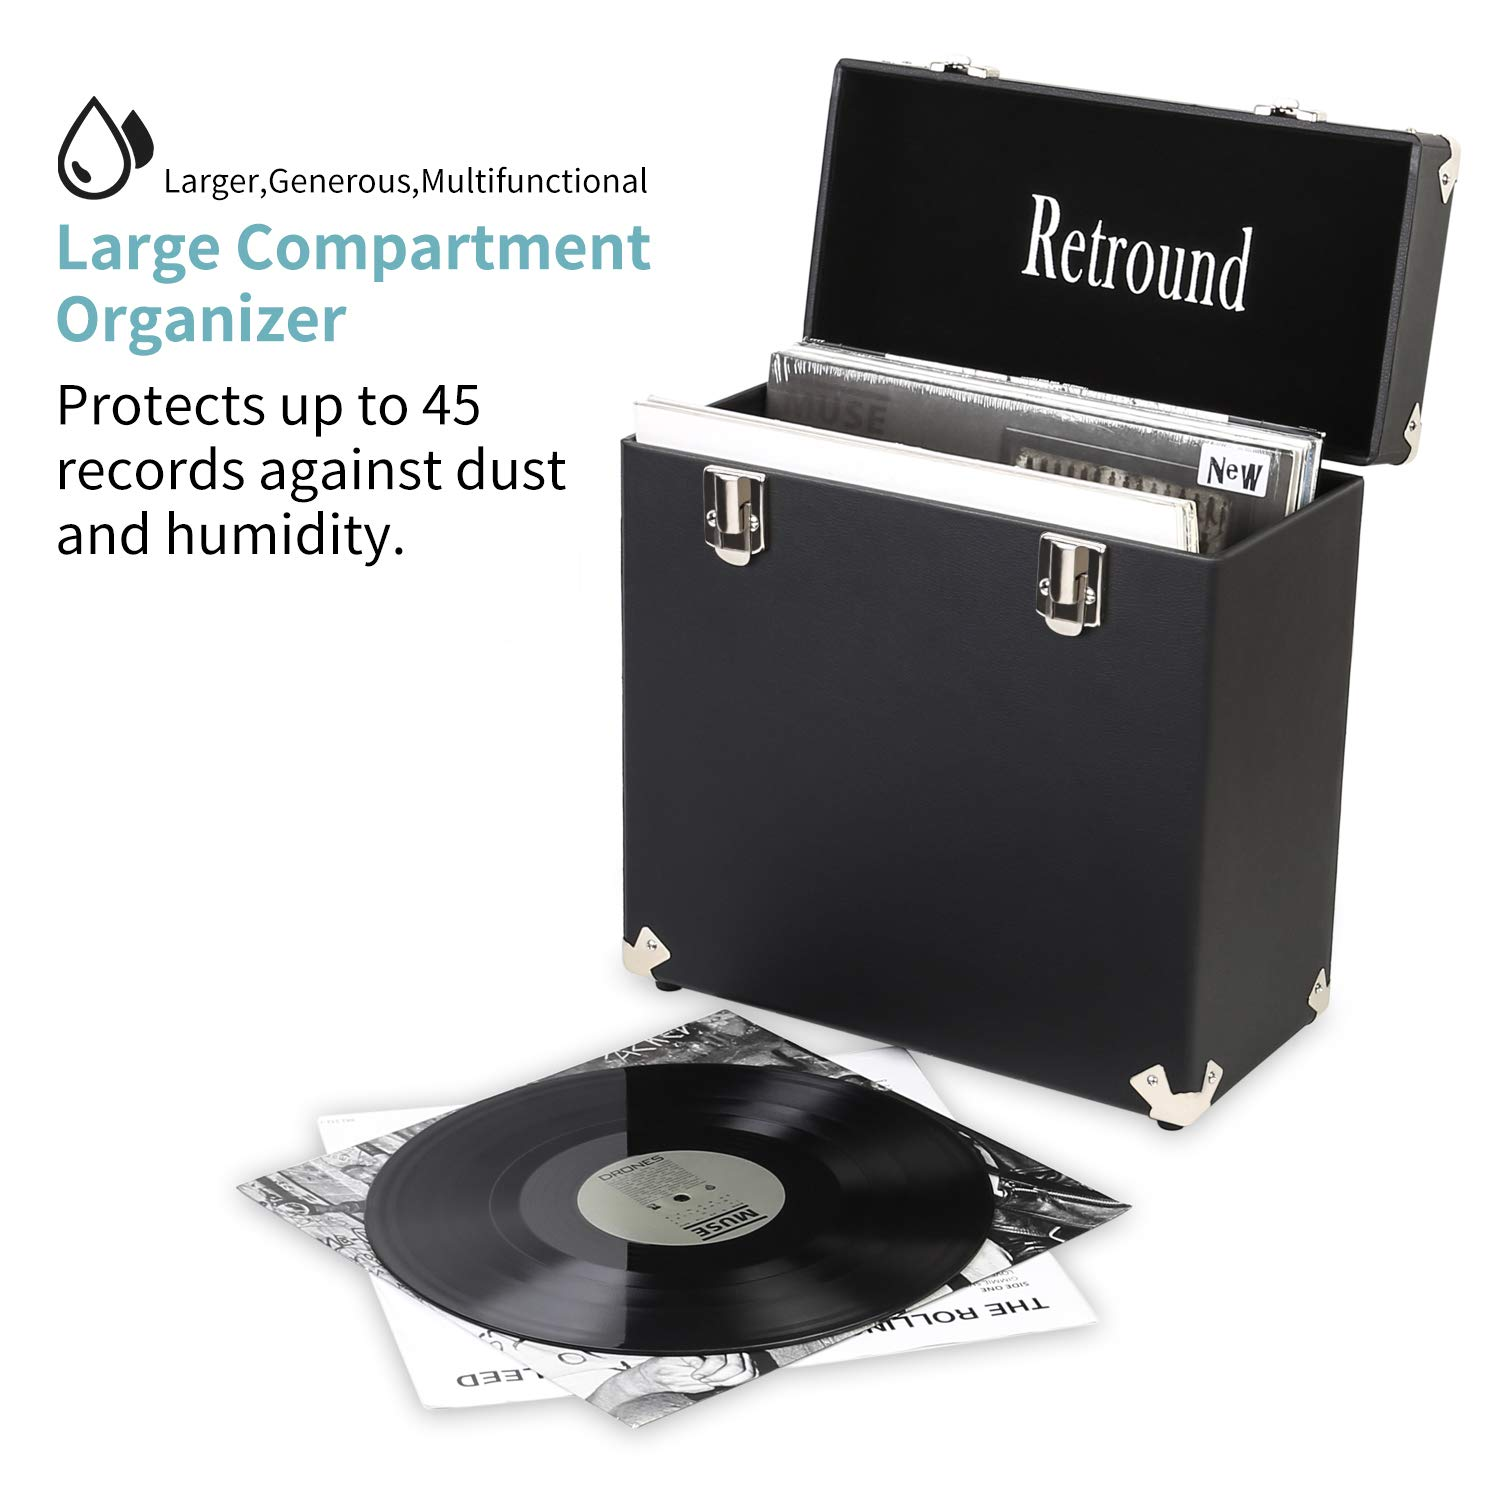 Retround Vintage Retro Vinyl leather Record Holder Case, LP Storage Carrying Case for 78 rpm, 45 rpm, 33 rpm Standard Size Vinyl Records Collections Storage Organizer Display Box-12 in (Leather Black) by Retround